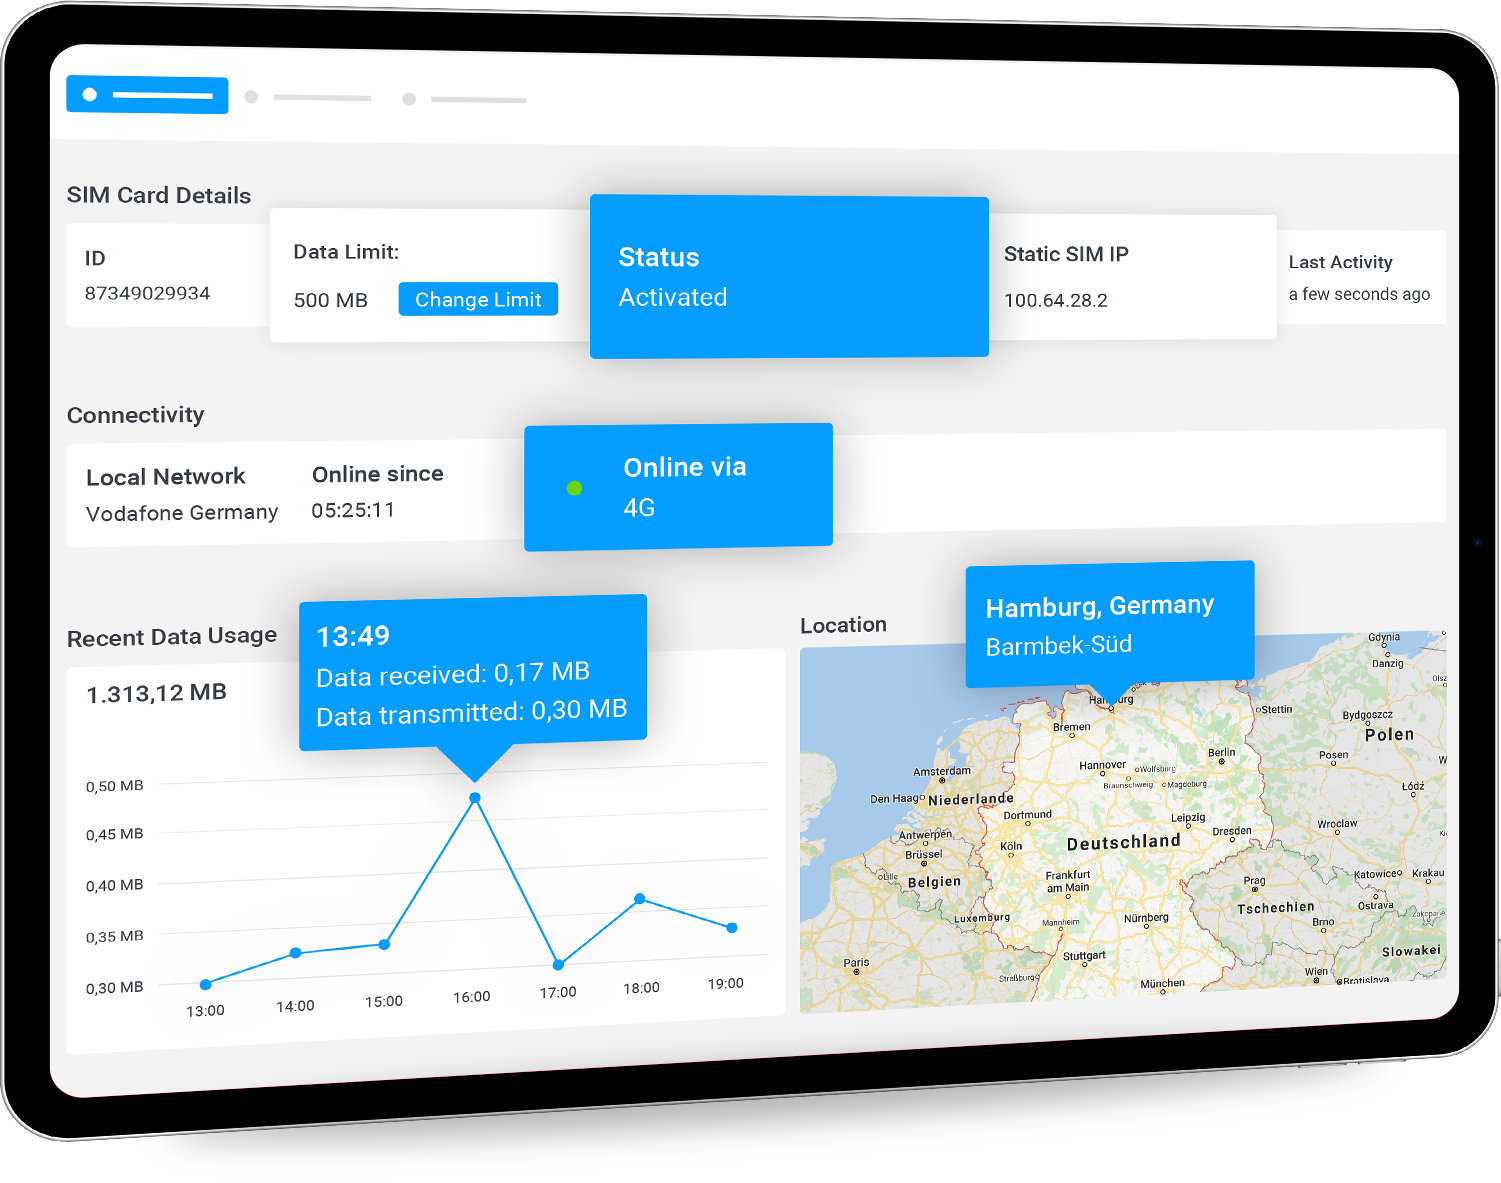 M2M SIM management in real time - in the wherever SIM customer portal